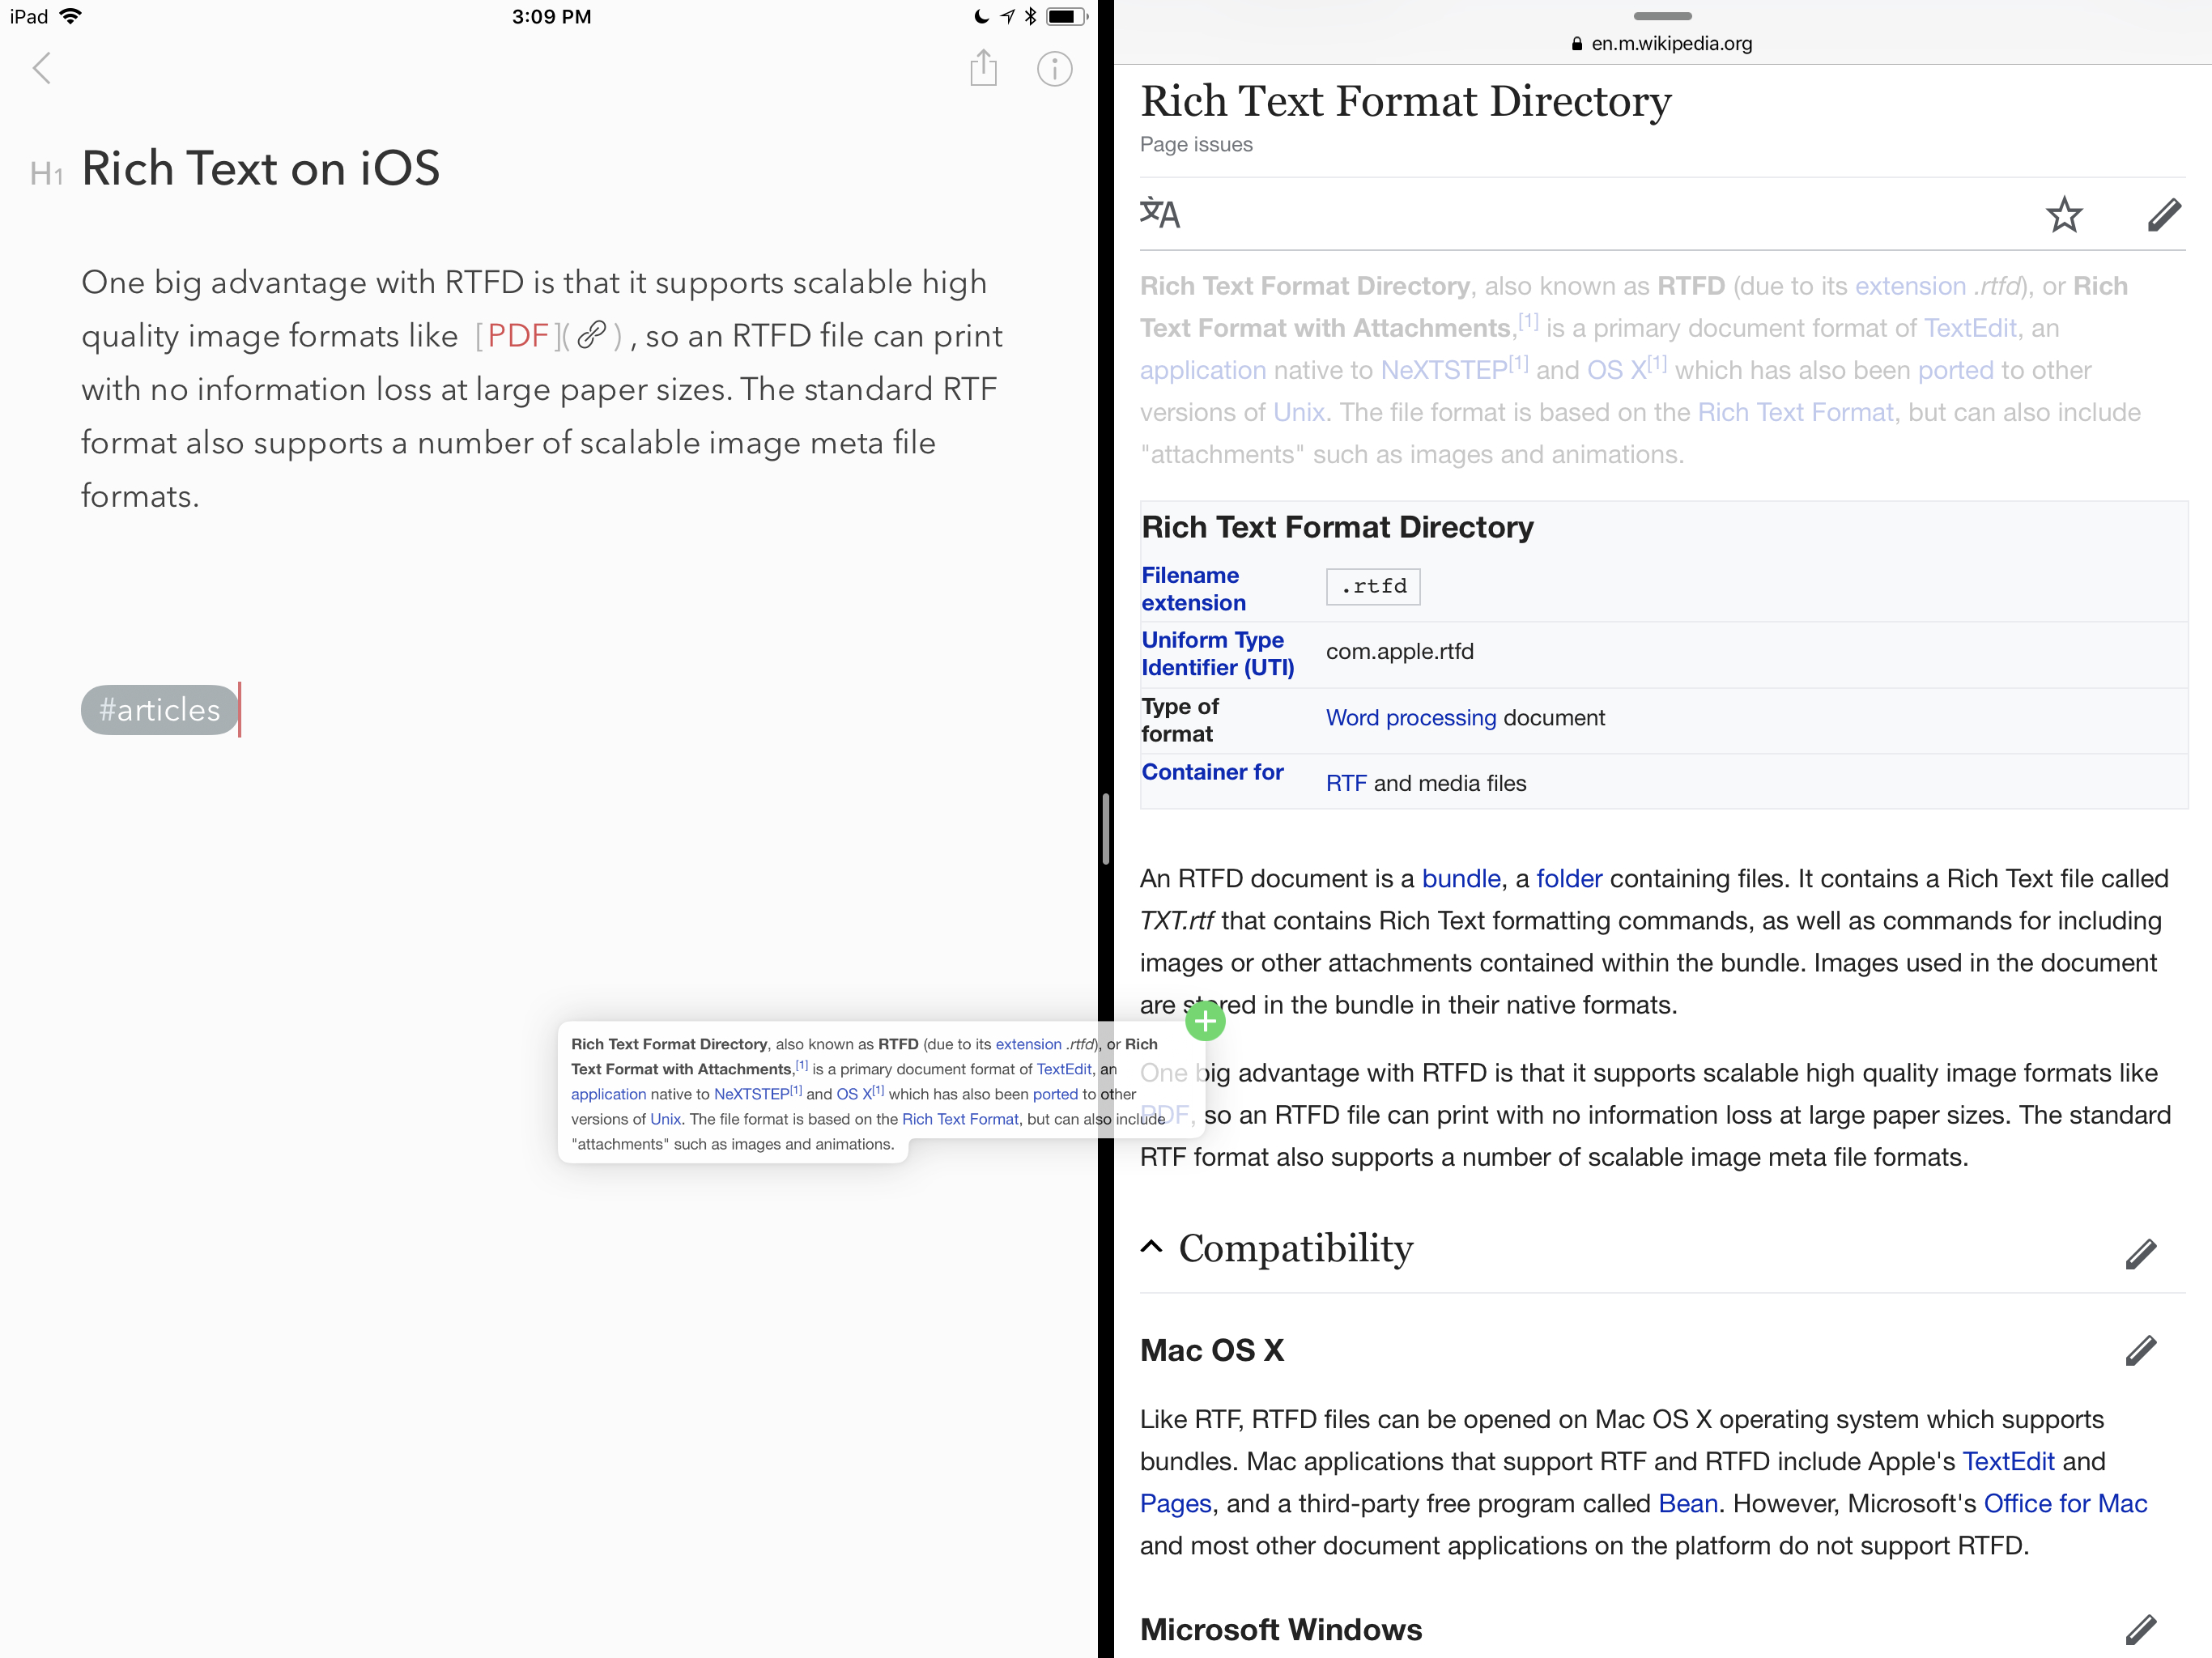 Blocks of rich text dragged from Safari retain their formatting in Bear.